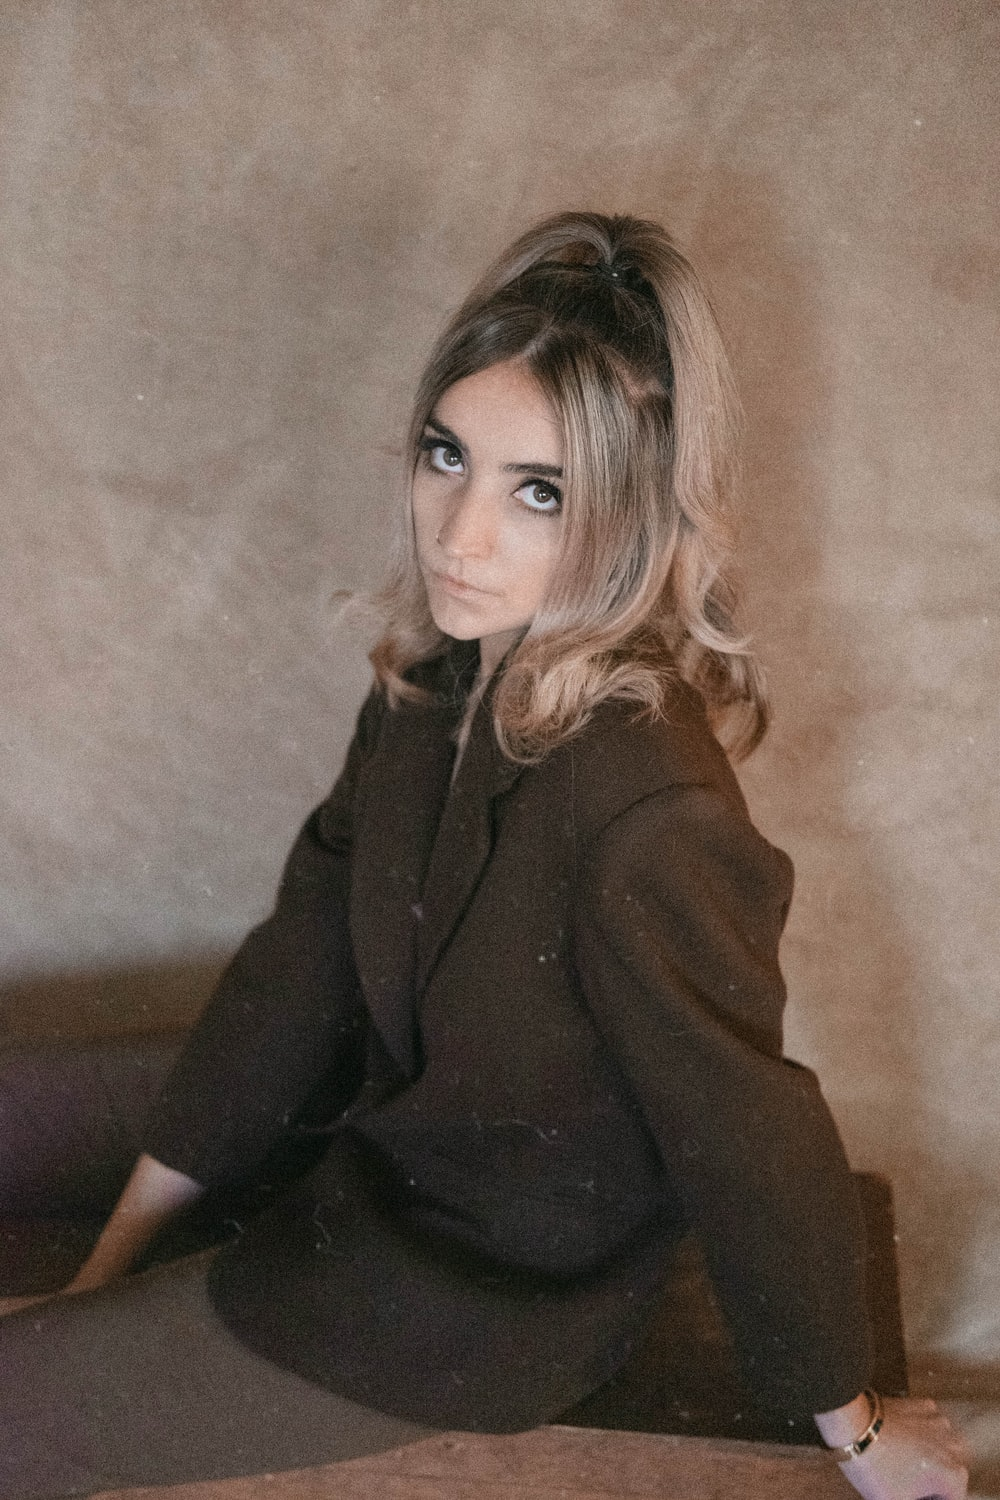 shallow focus photo of woman in black coat